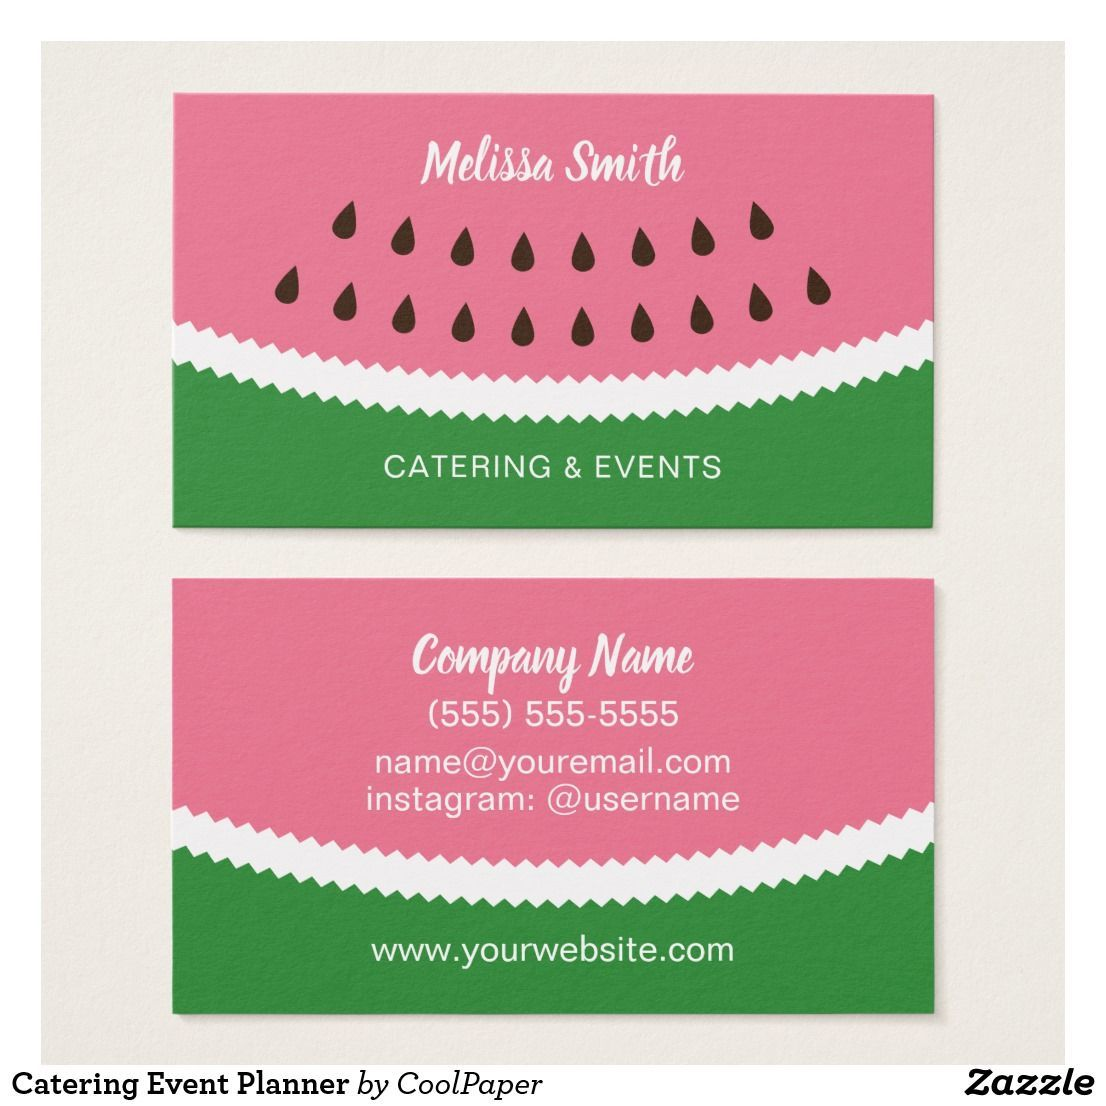 Catering Event Planner Business Card Template Promote Your Food Service Ev Event Planner Business Card Event Planning Business Event Planning Business Cards